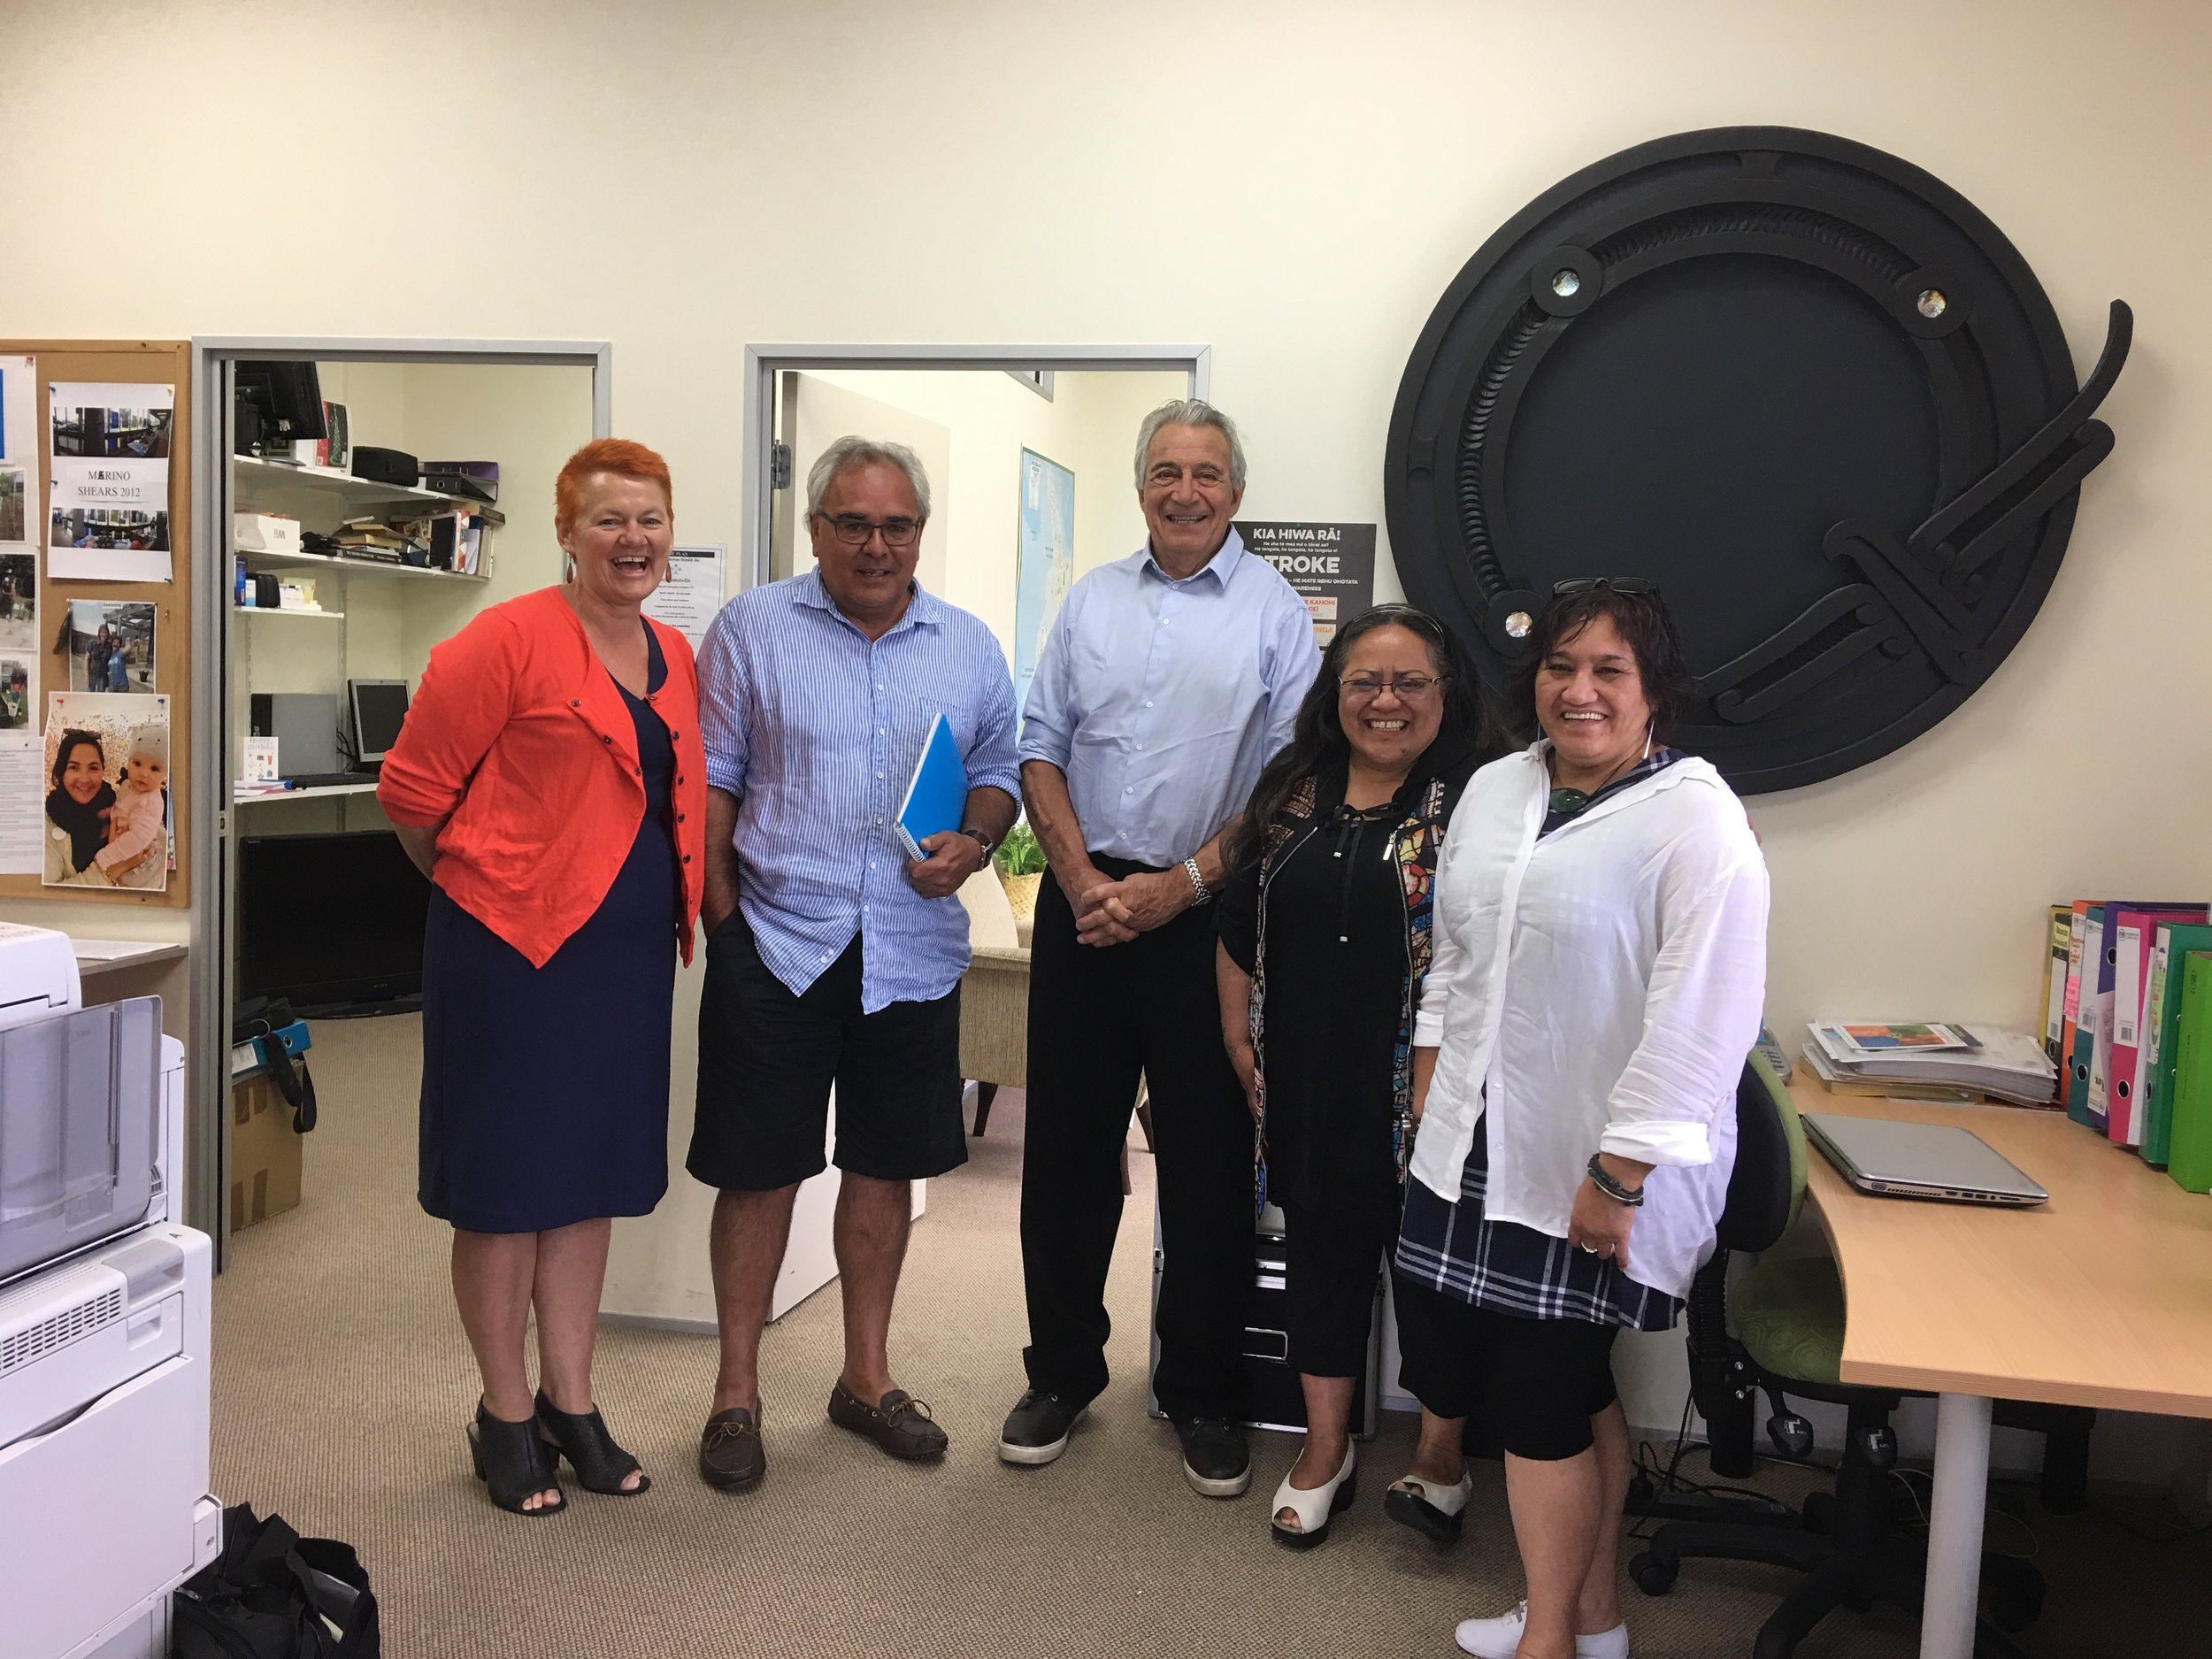 Alongside of Ricky Carr (Manager); Professor Mantell, Maire Kipa and Philomena Shelford from Waihōpai.